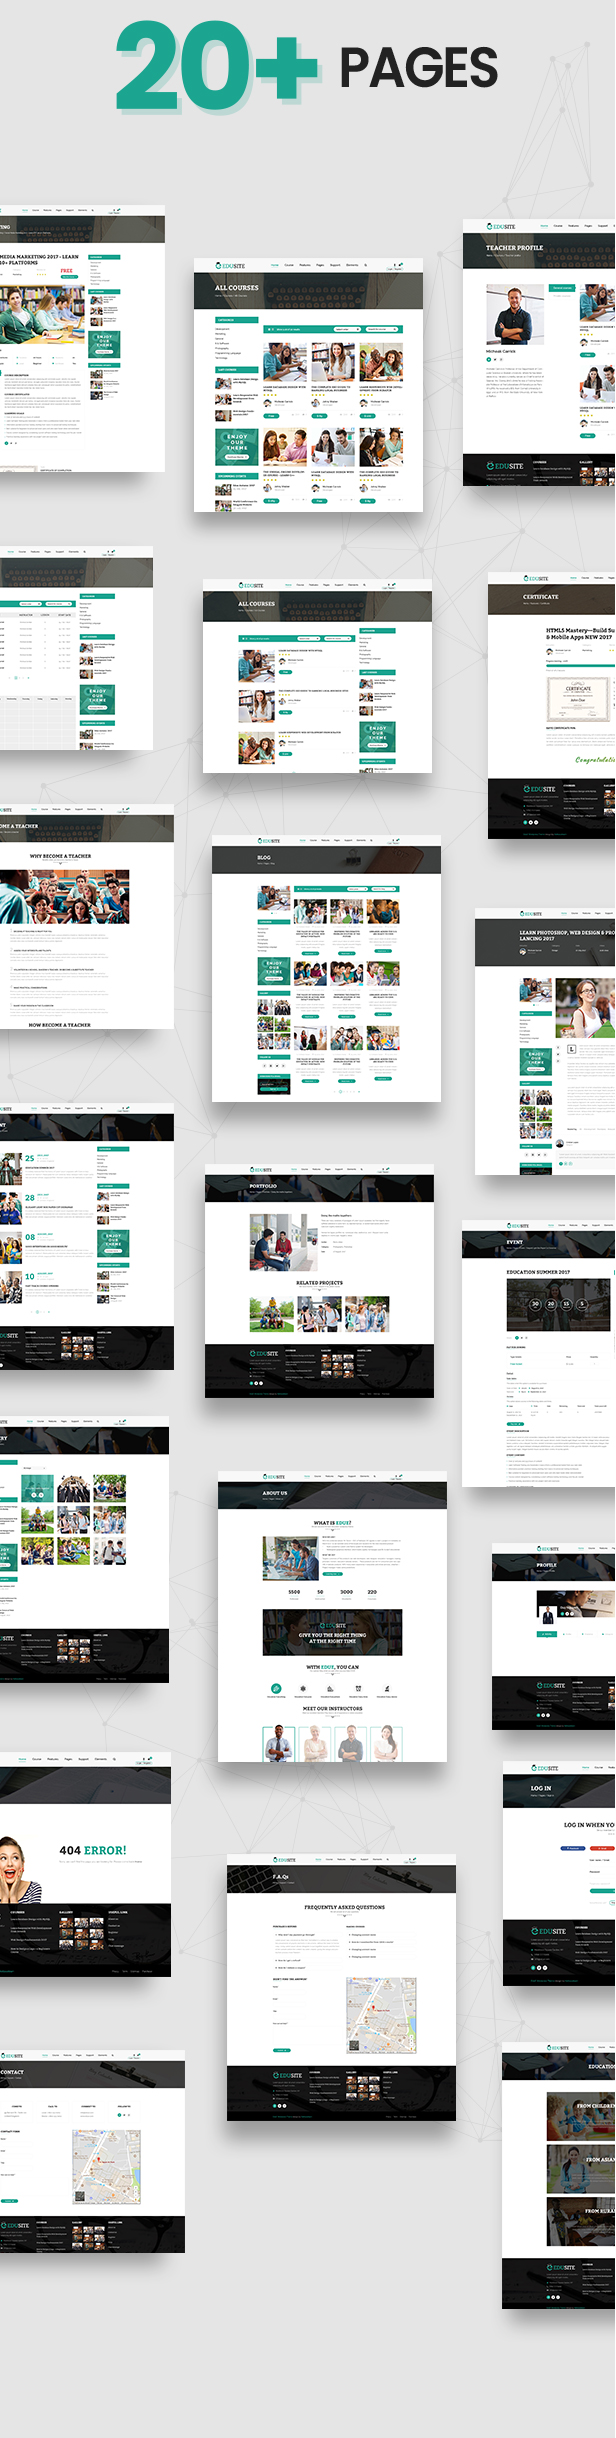 Udetor - LMS Education WordPress Theme - 10